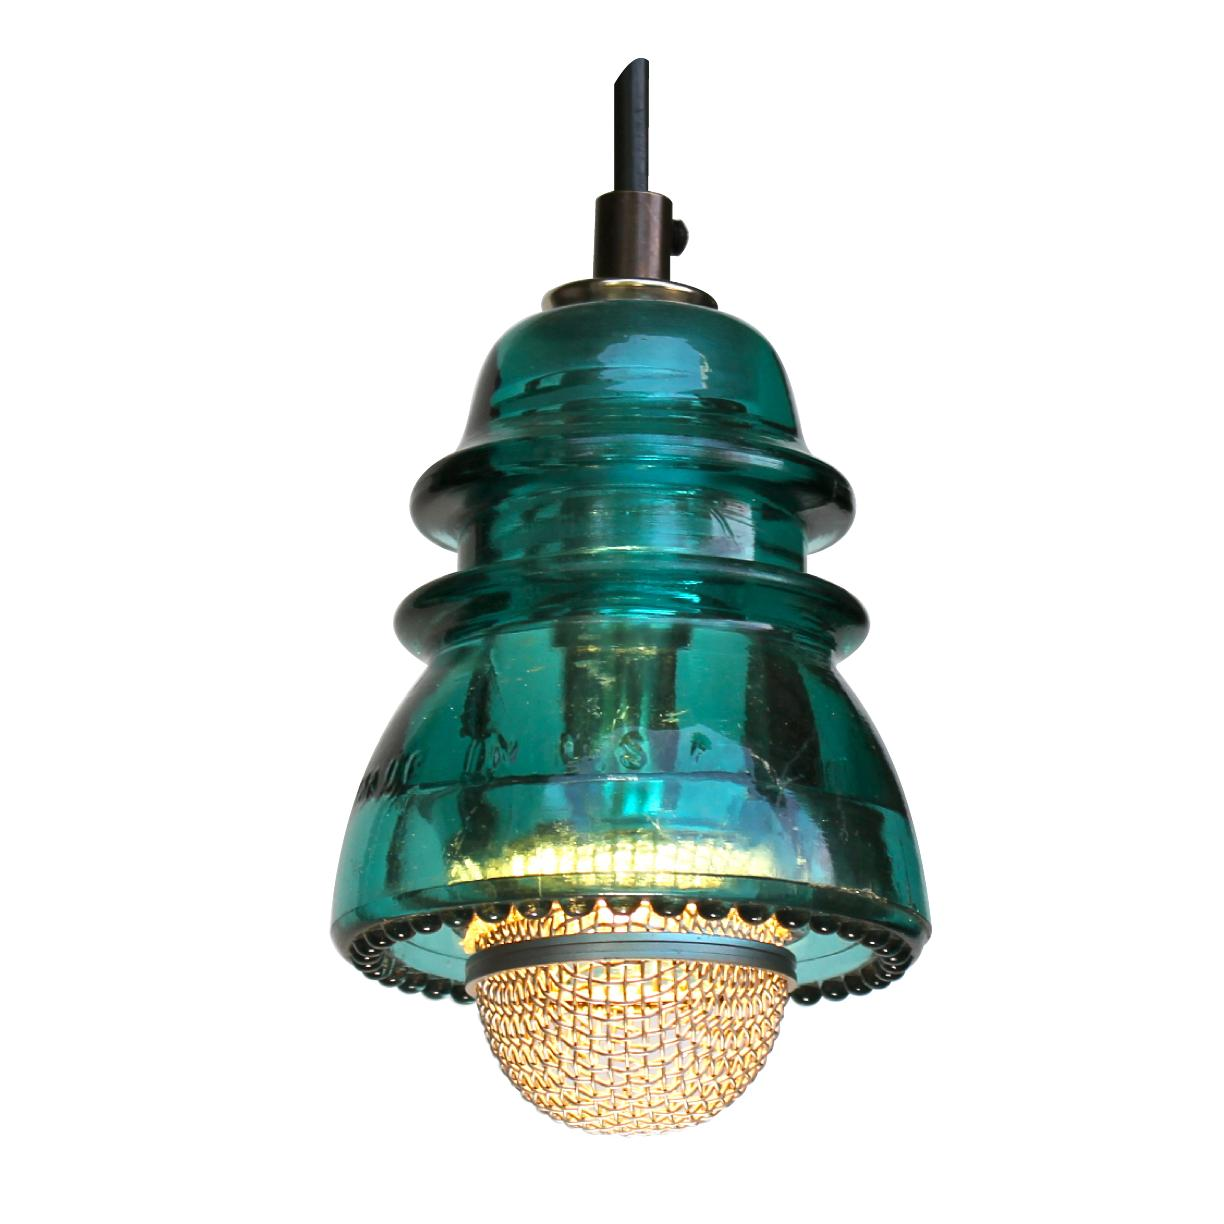 Insulator light pendant w microphone cover 120v6w 580 lumens insulator light pendant aloadofball Choice Image